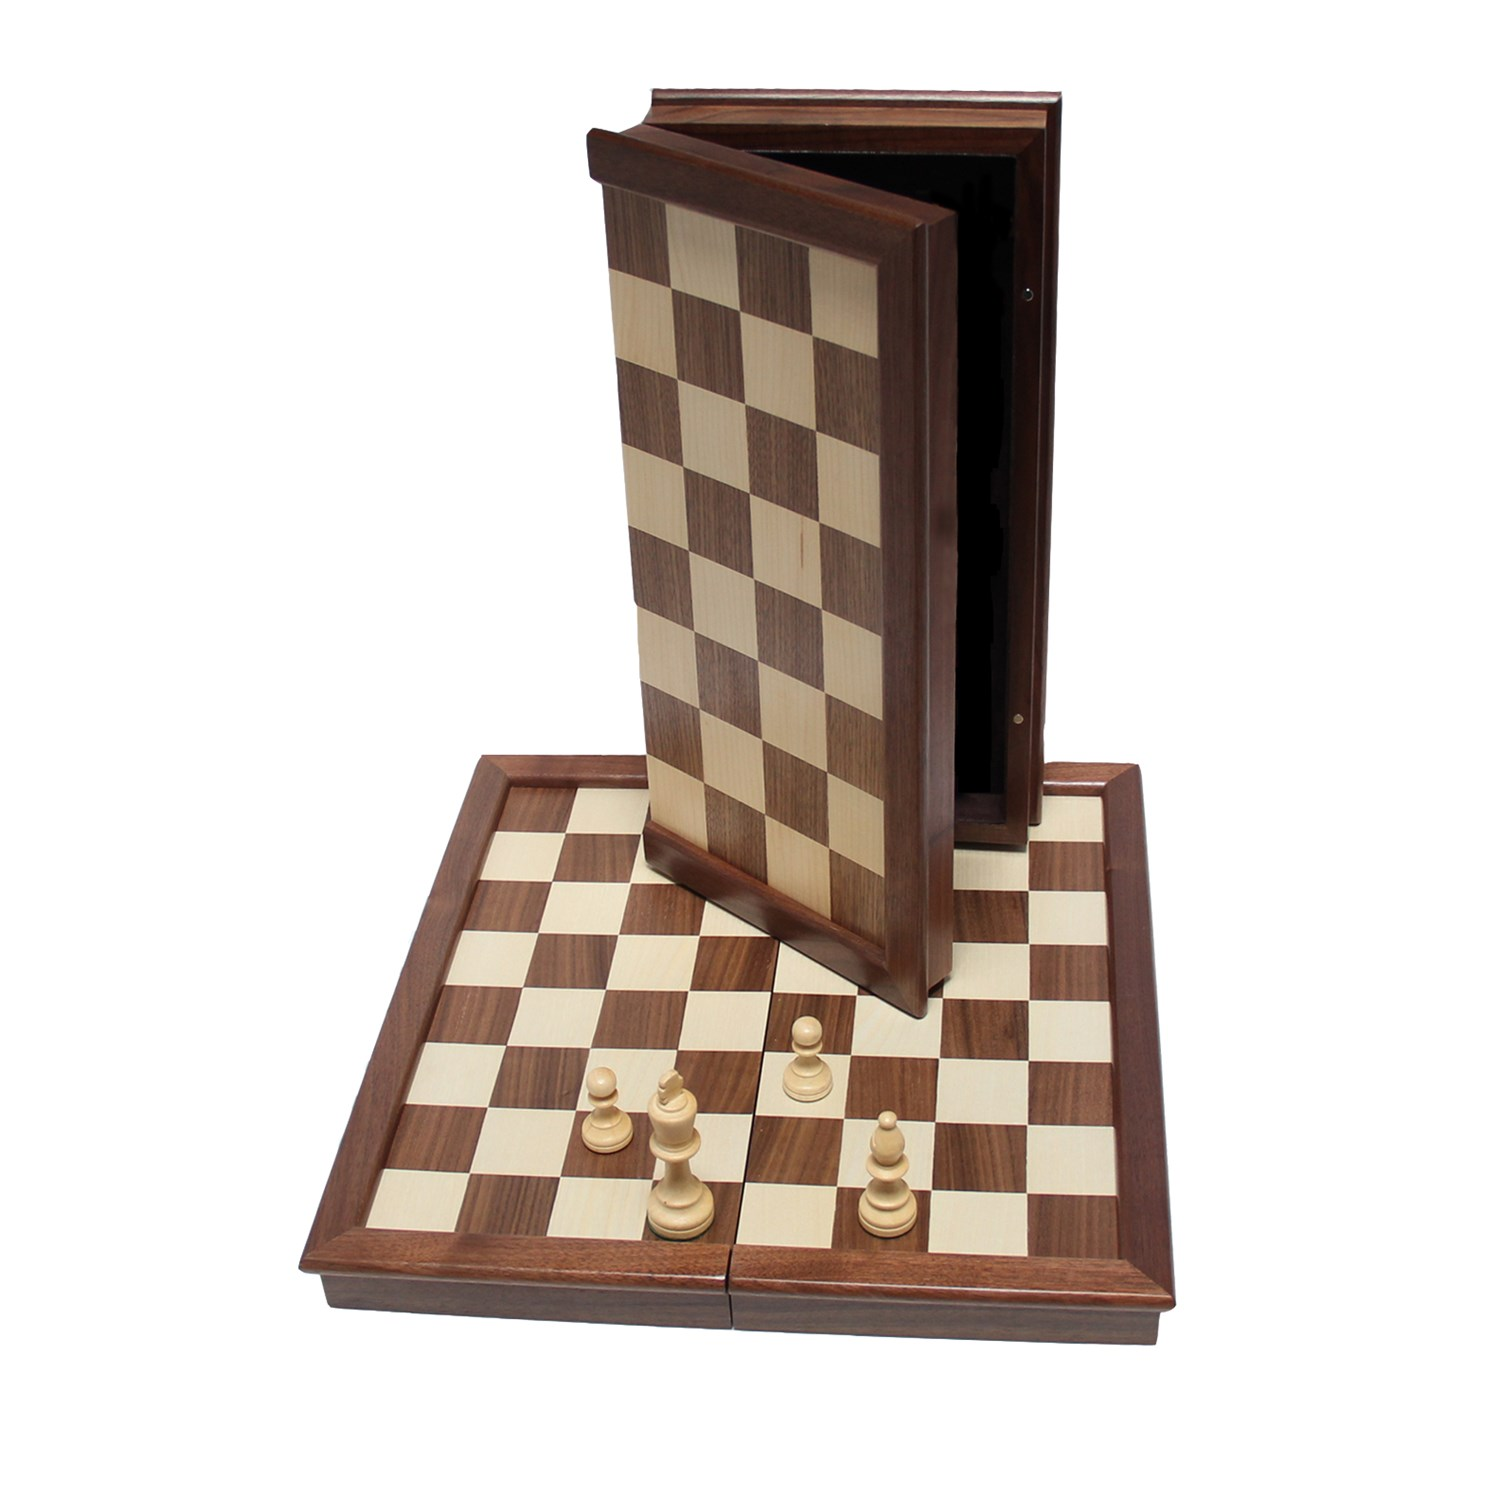 Chess Boards For Sale Amazon Classic Folding Chess Set Walnut Wood Board 17 Inch